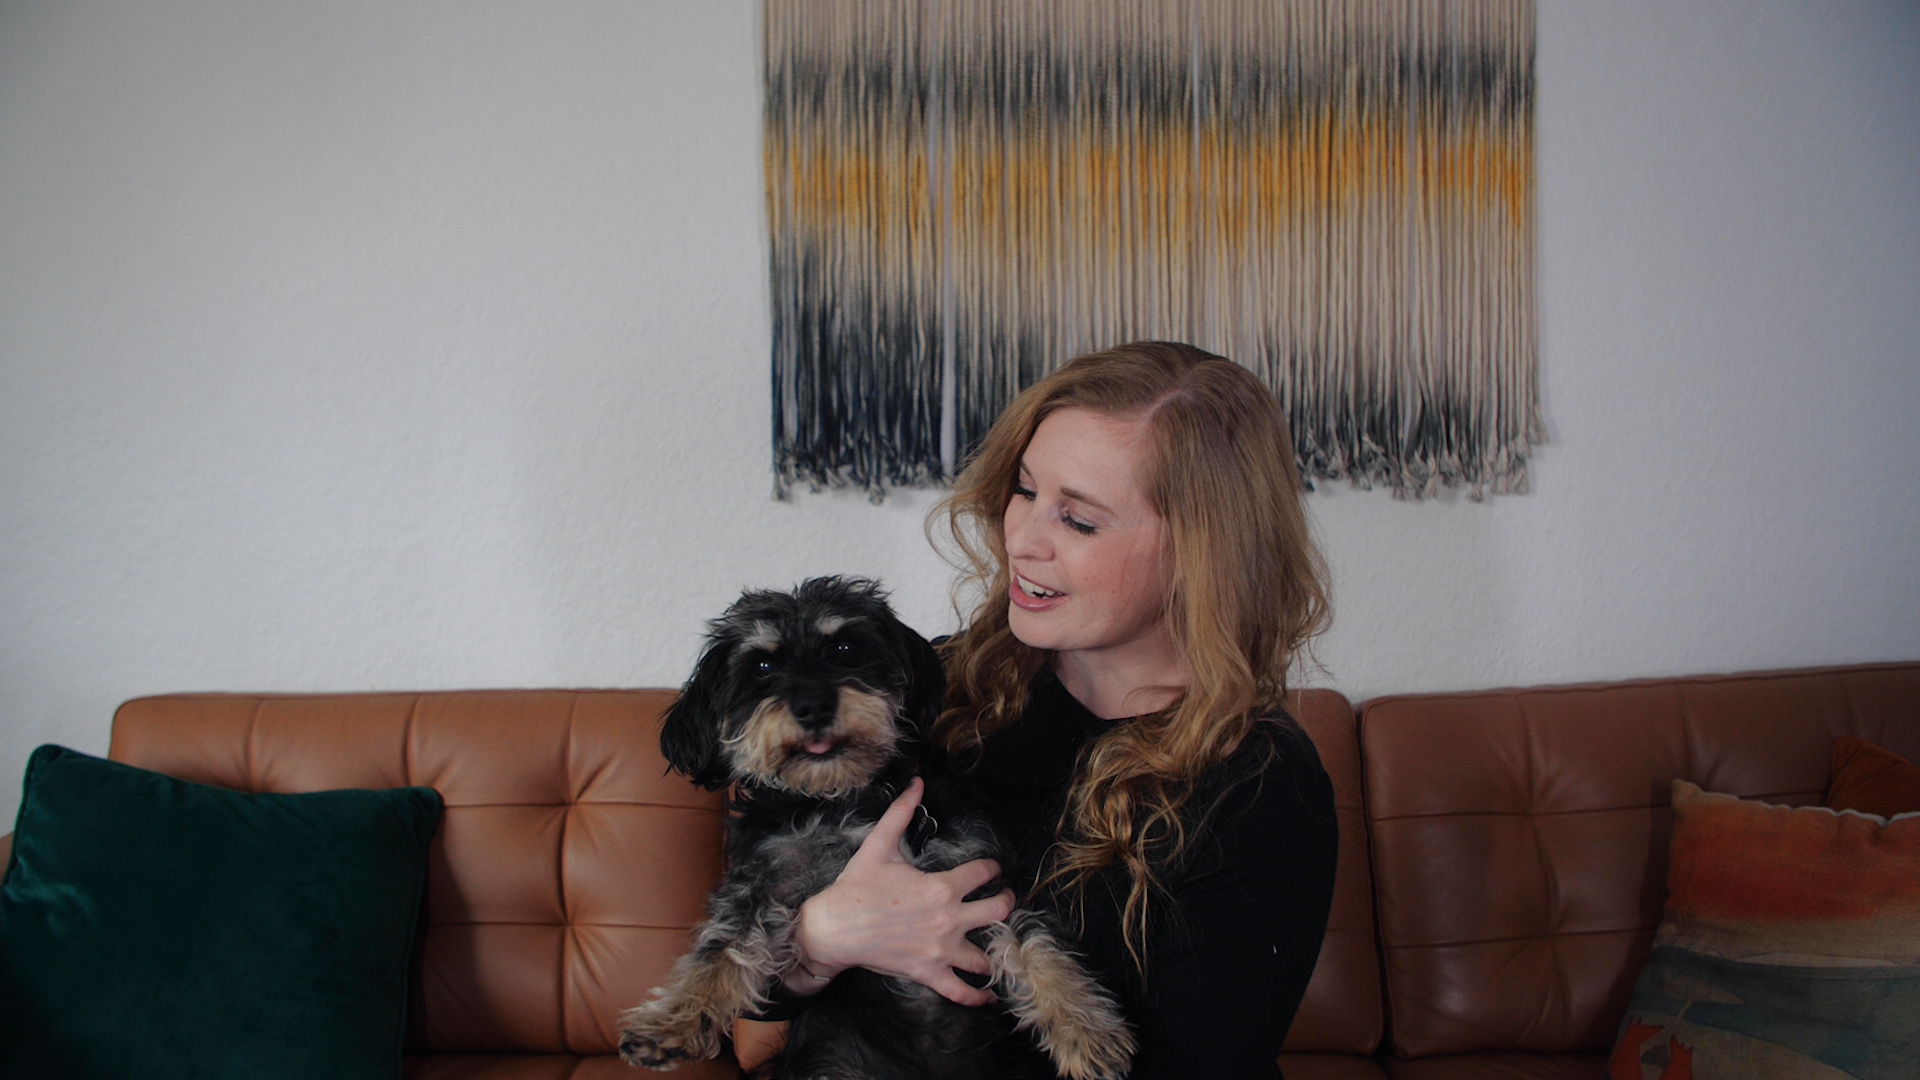 The author and her dog